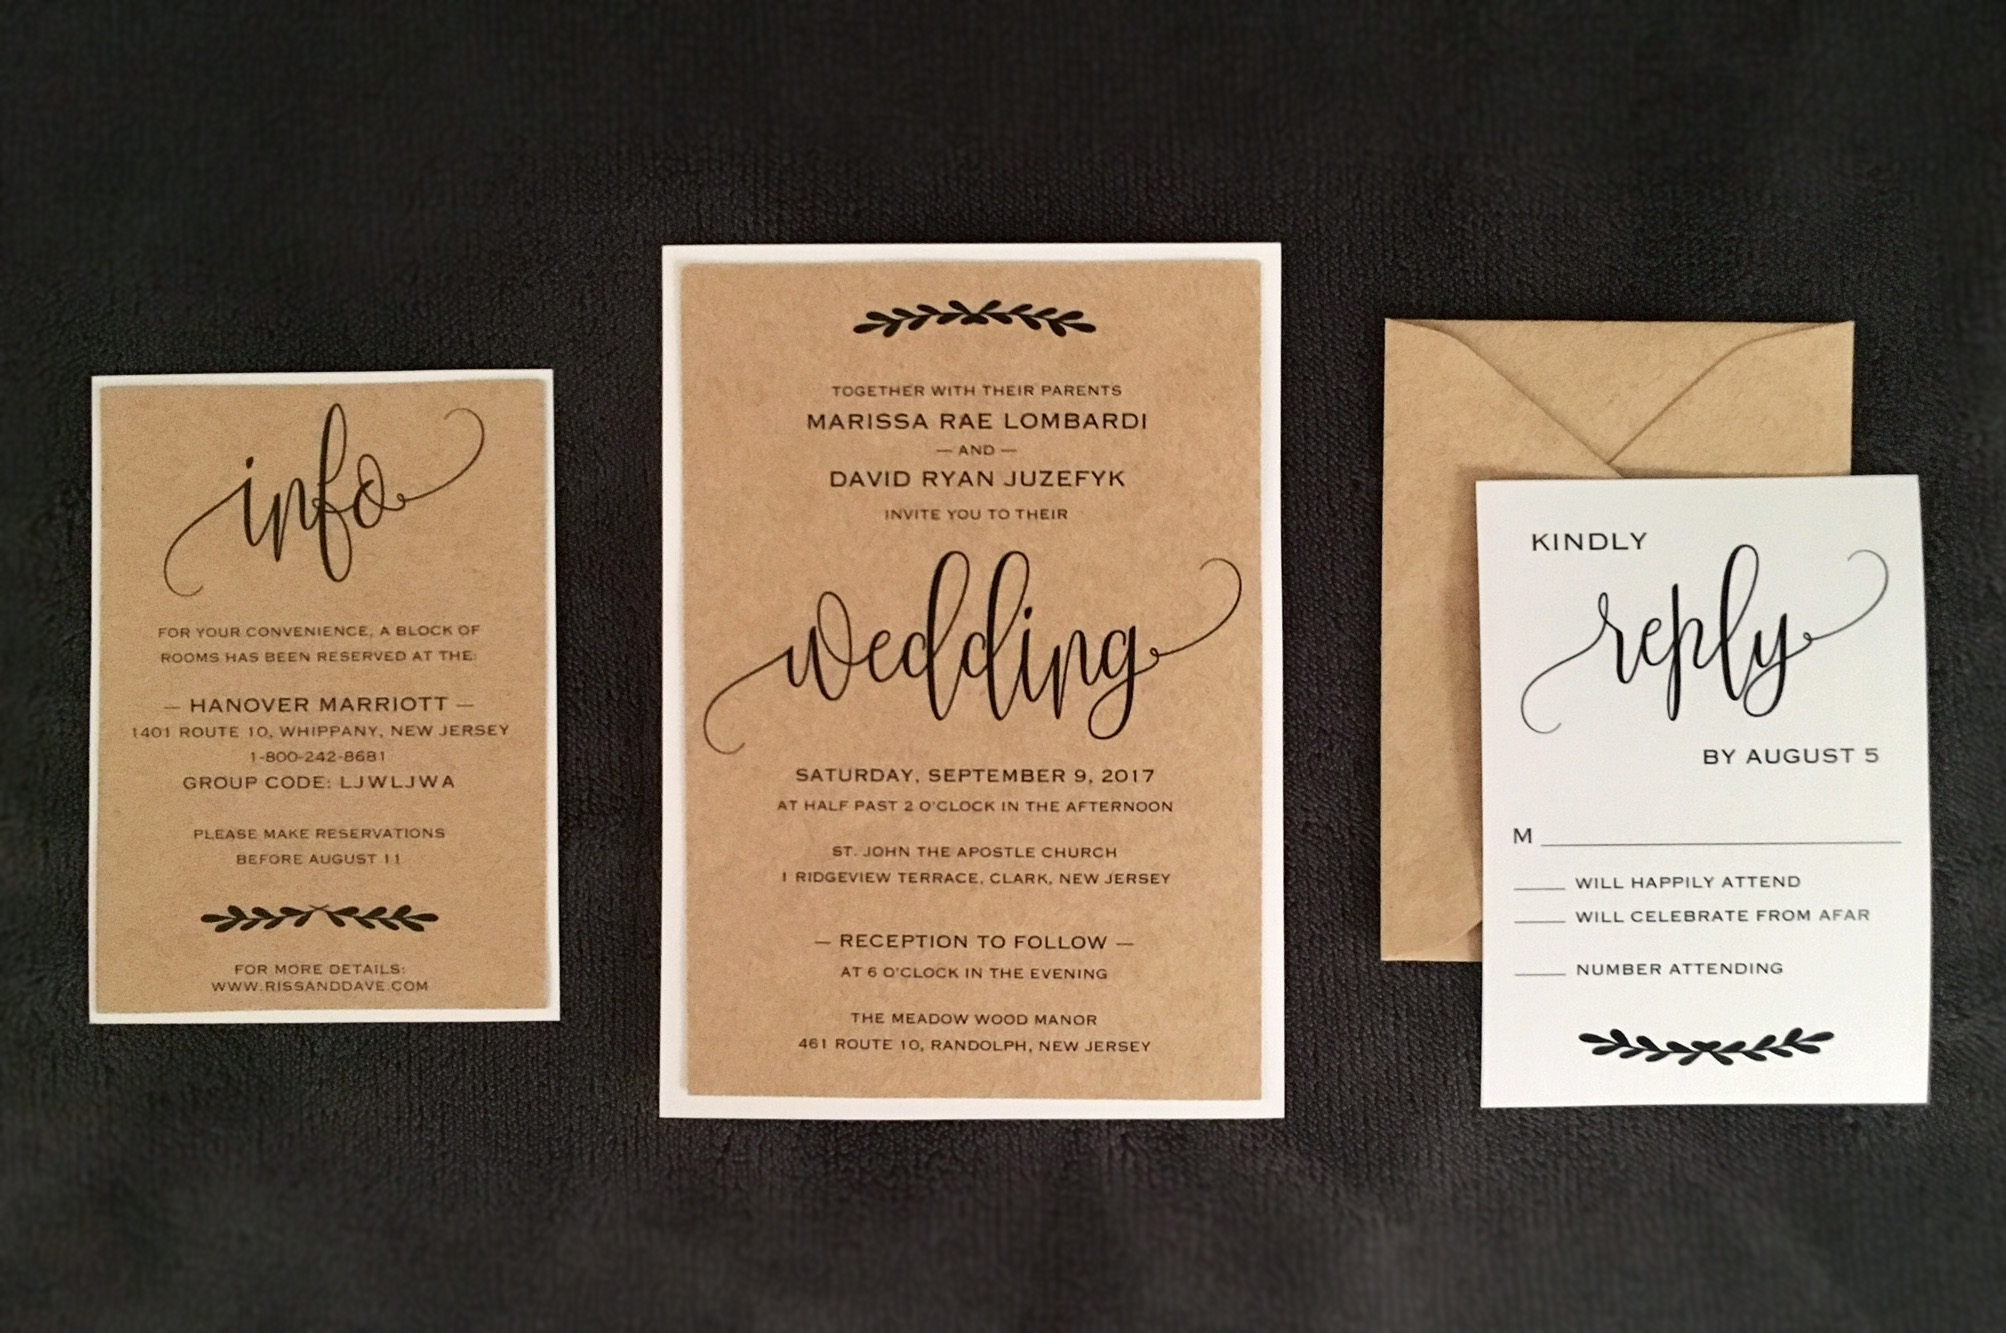 Diy Wedding Invitations With Photo My Diy Story Rustic Straw Kraft Wedding Invitation Cards